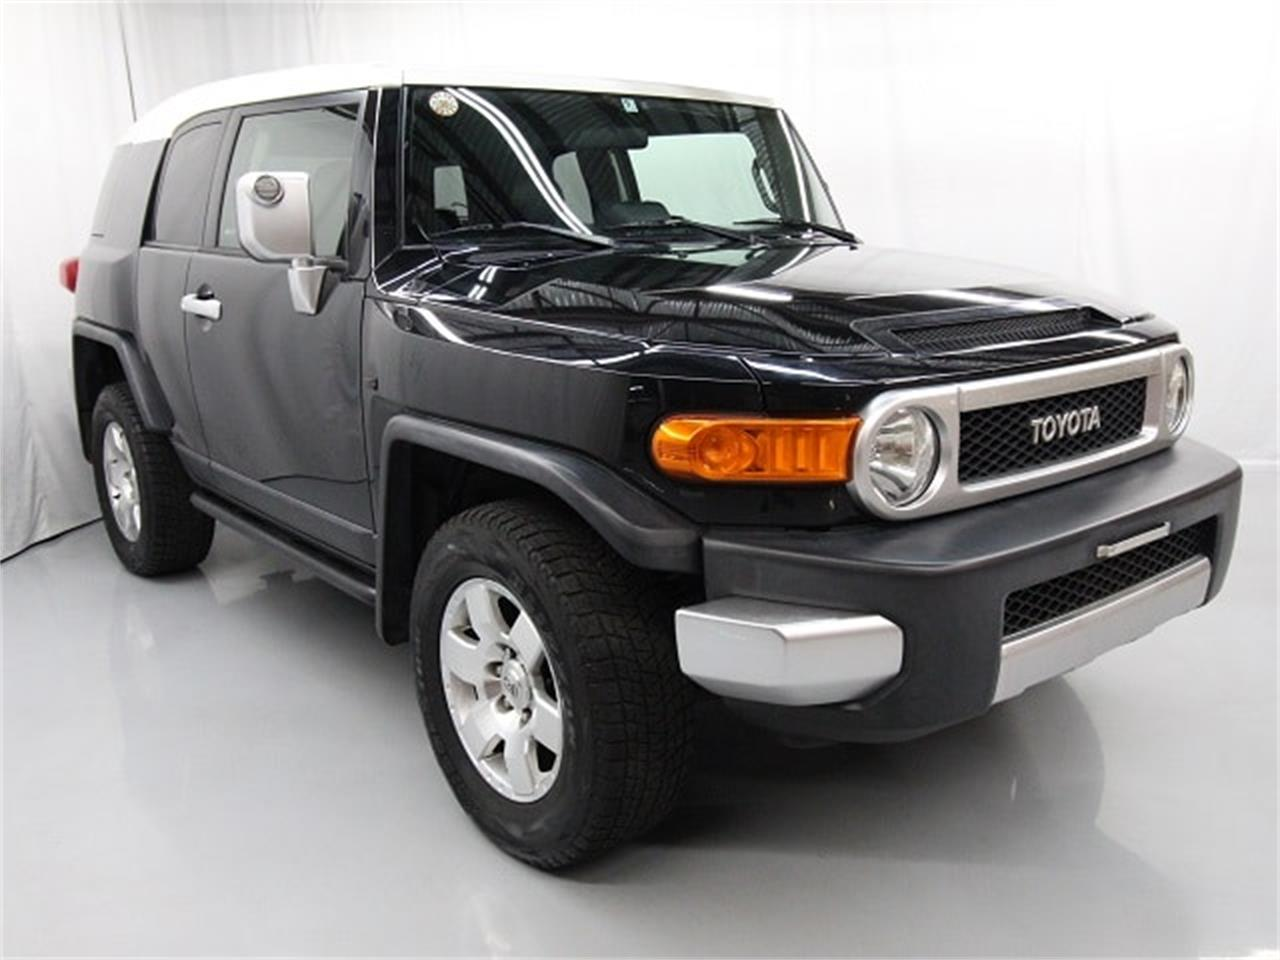 Large Picture of '07 Toyota FJ Cruiser Offered by Duncan Imports & Classic Cars - Q6UM